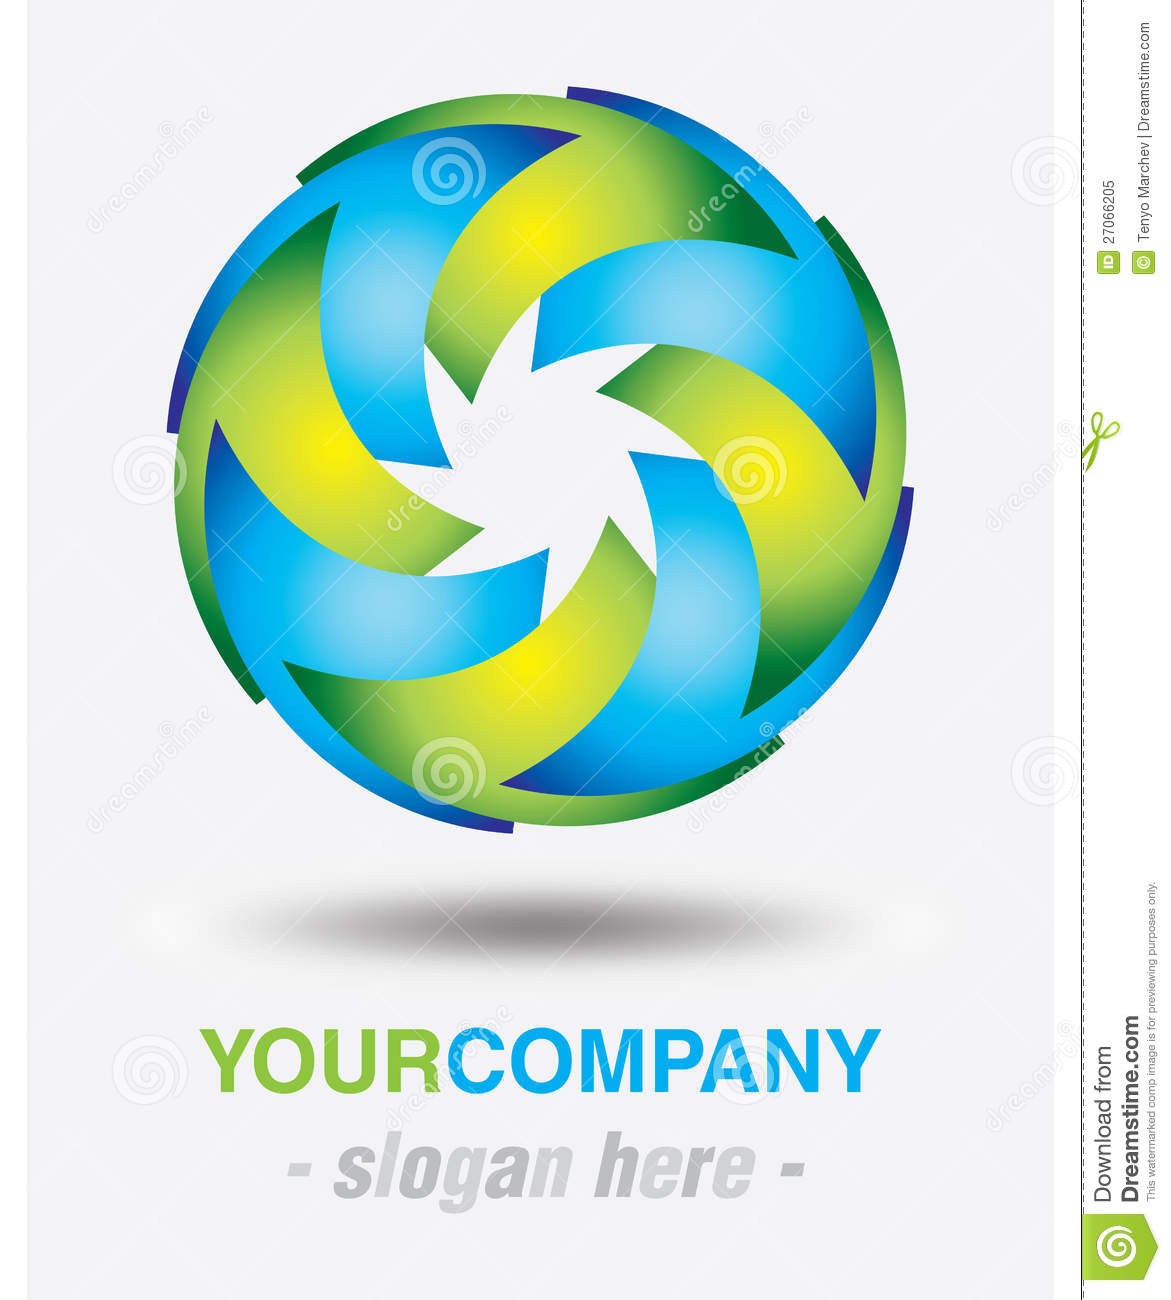 Modern Logo Design Royalty Free Stock Photo Image 27066205